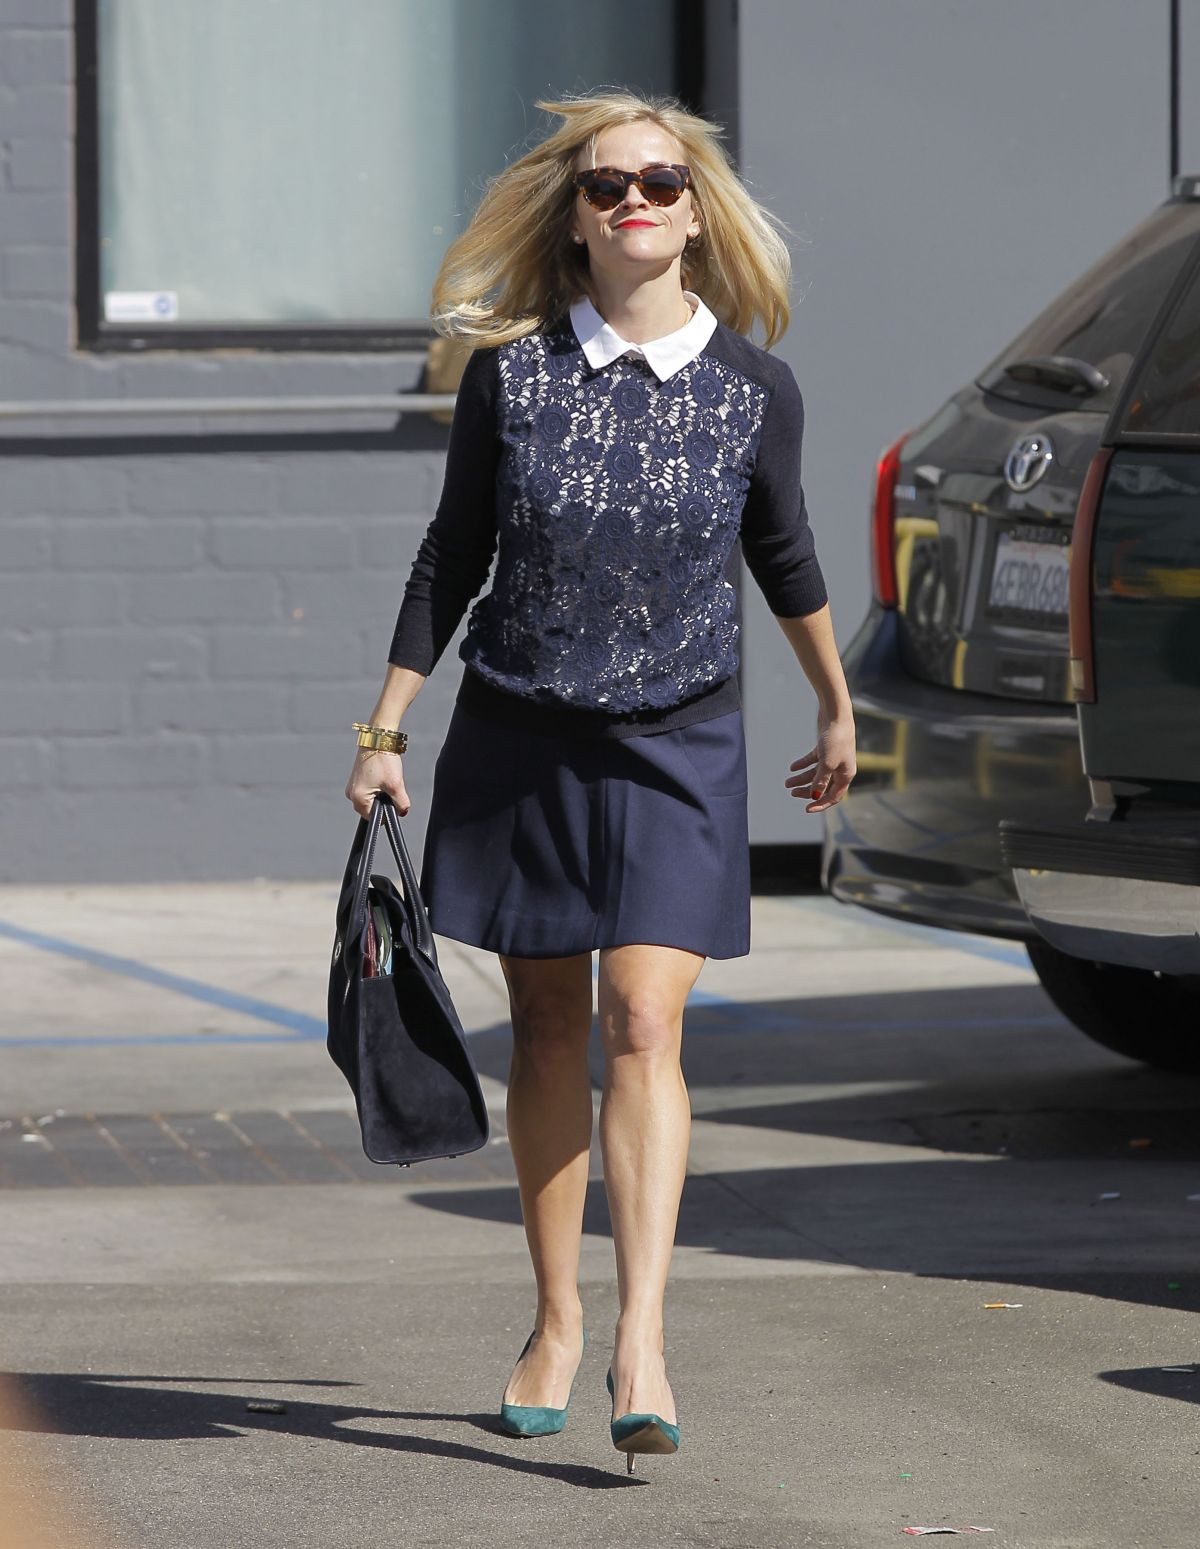 REESE WITHERSPOON Out and About in Beverly Hills 2410